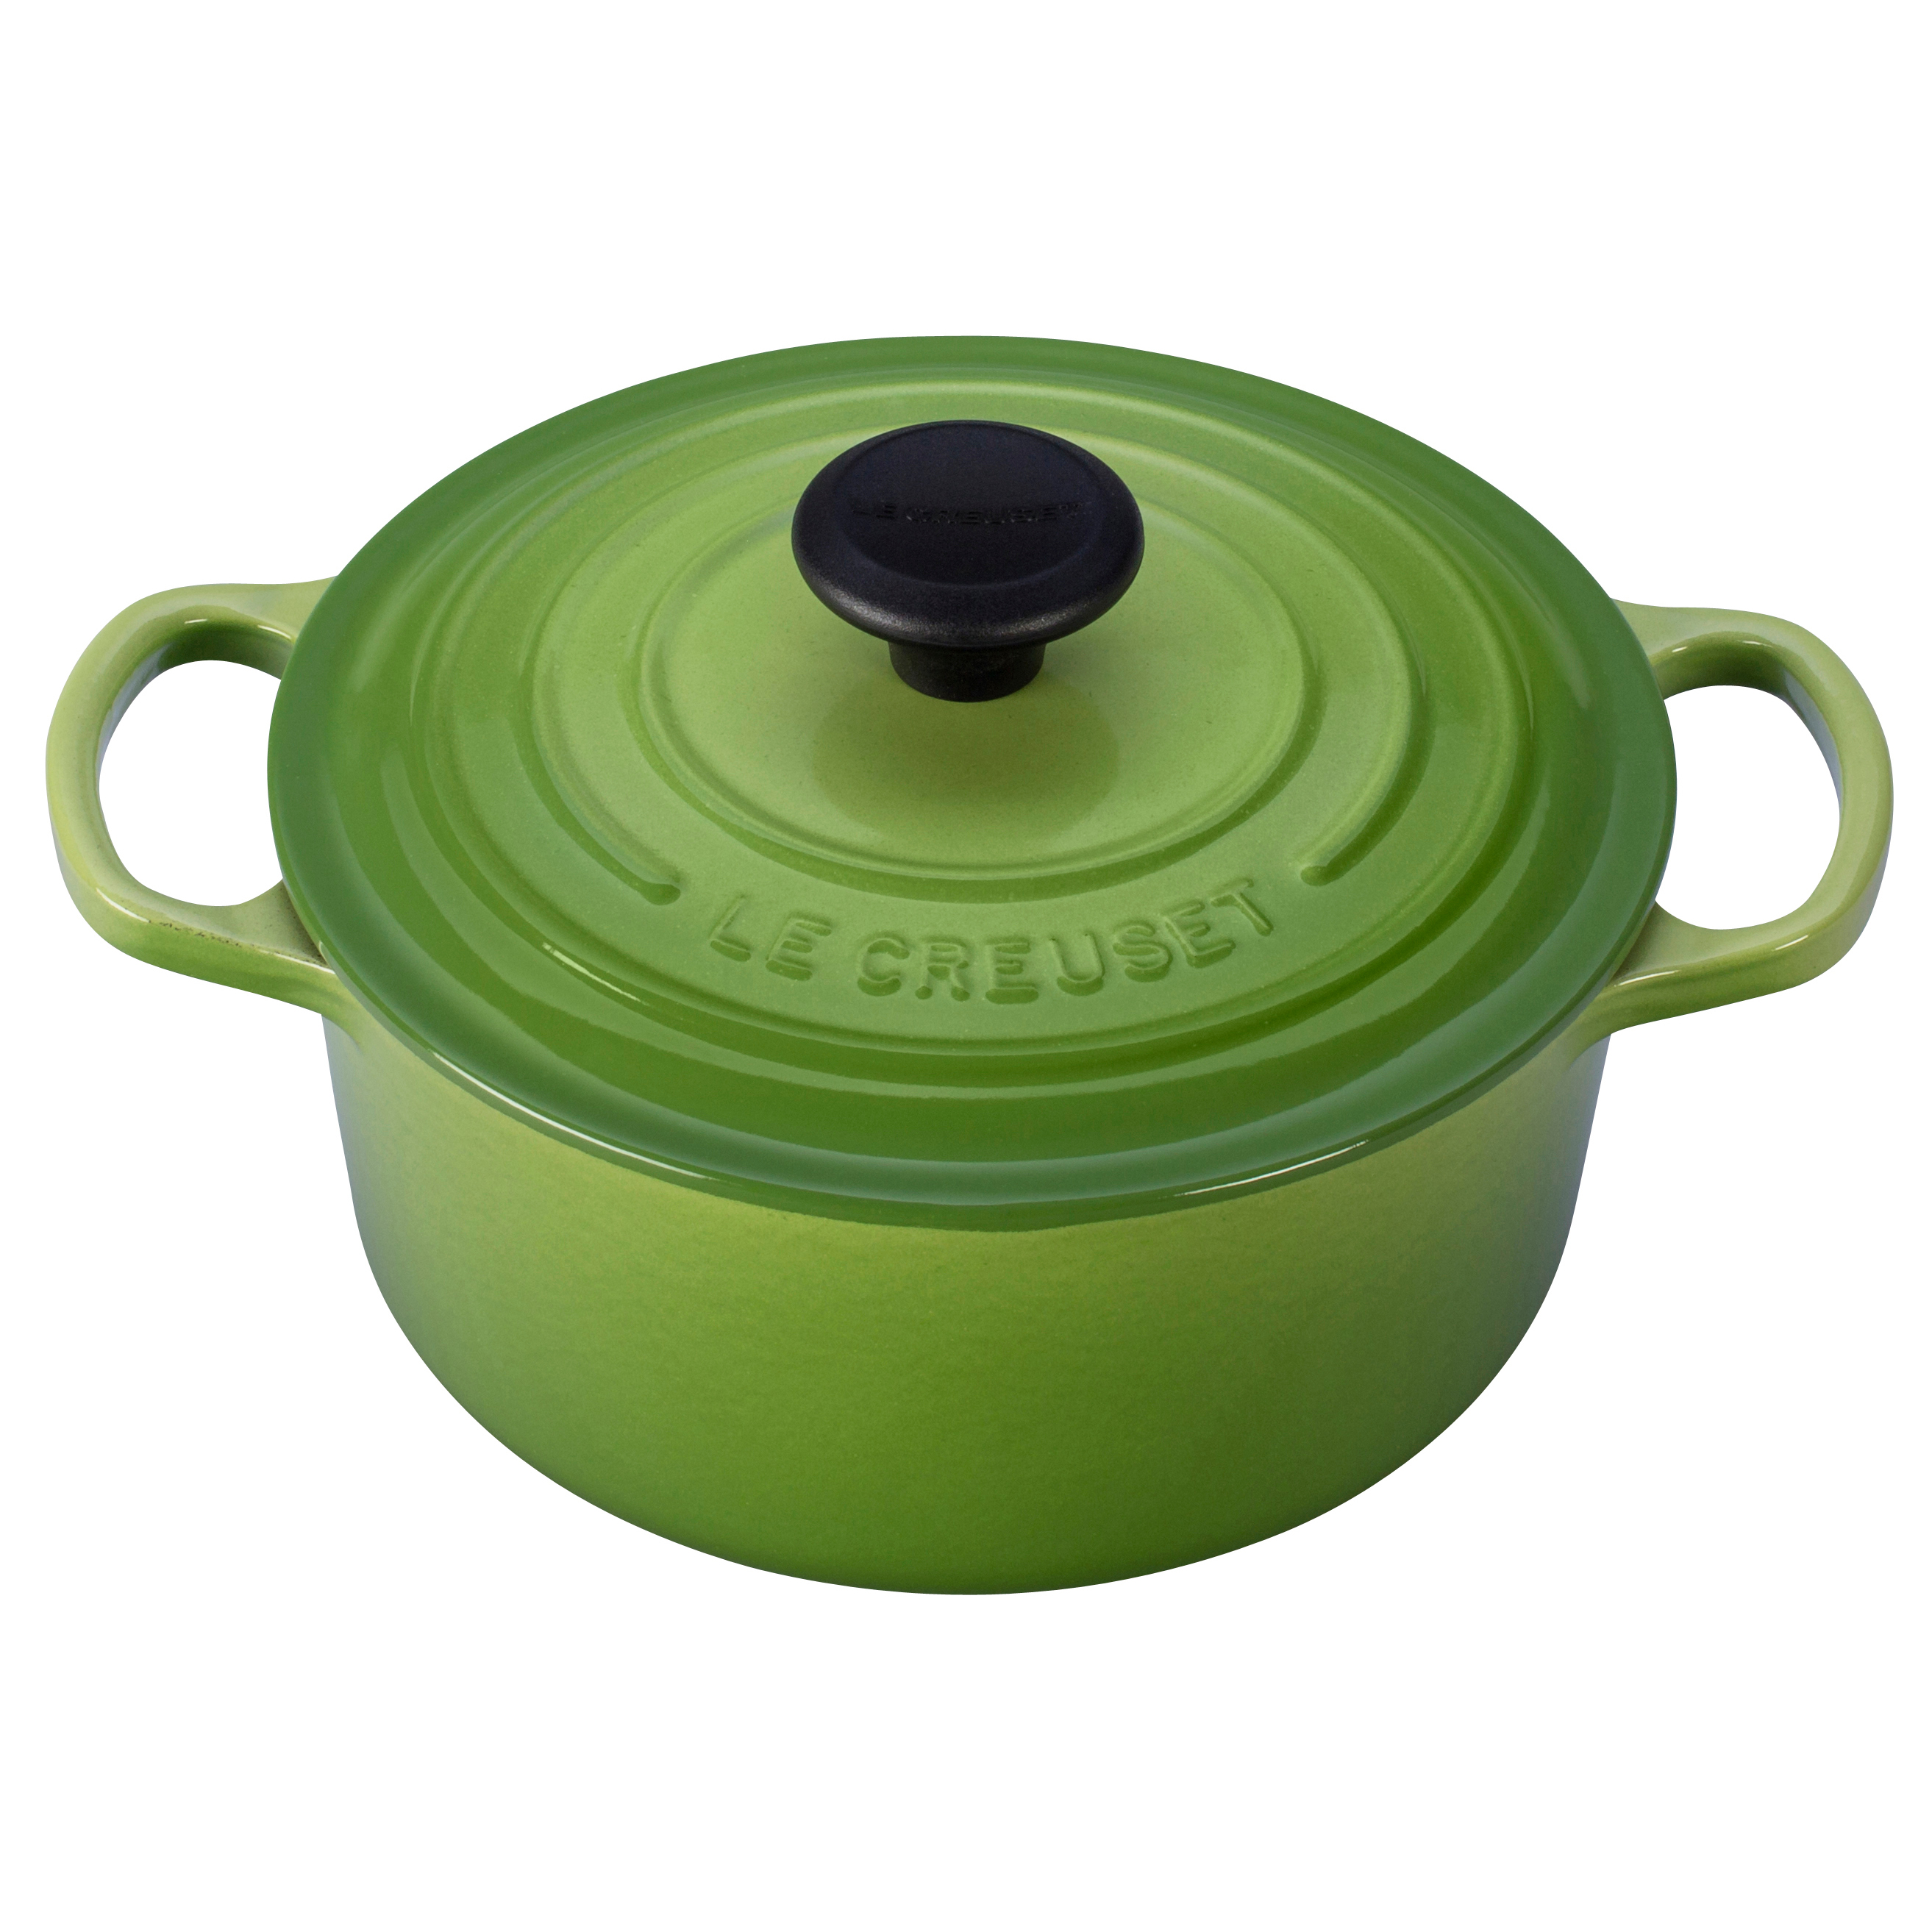 Le Creuset Signature Palm Enameled Cast Iron Round French Oven, 2 Quart